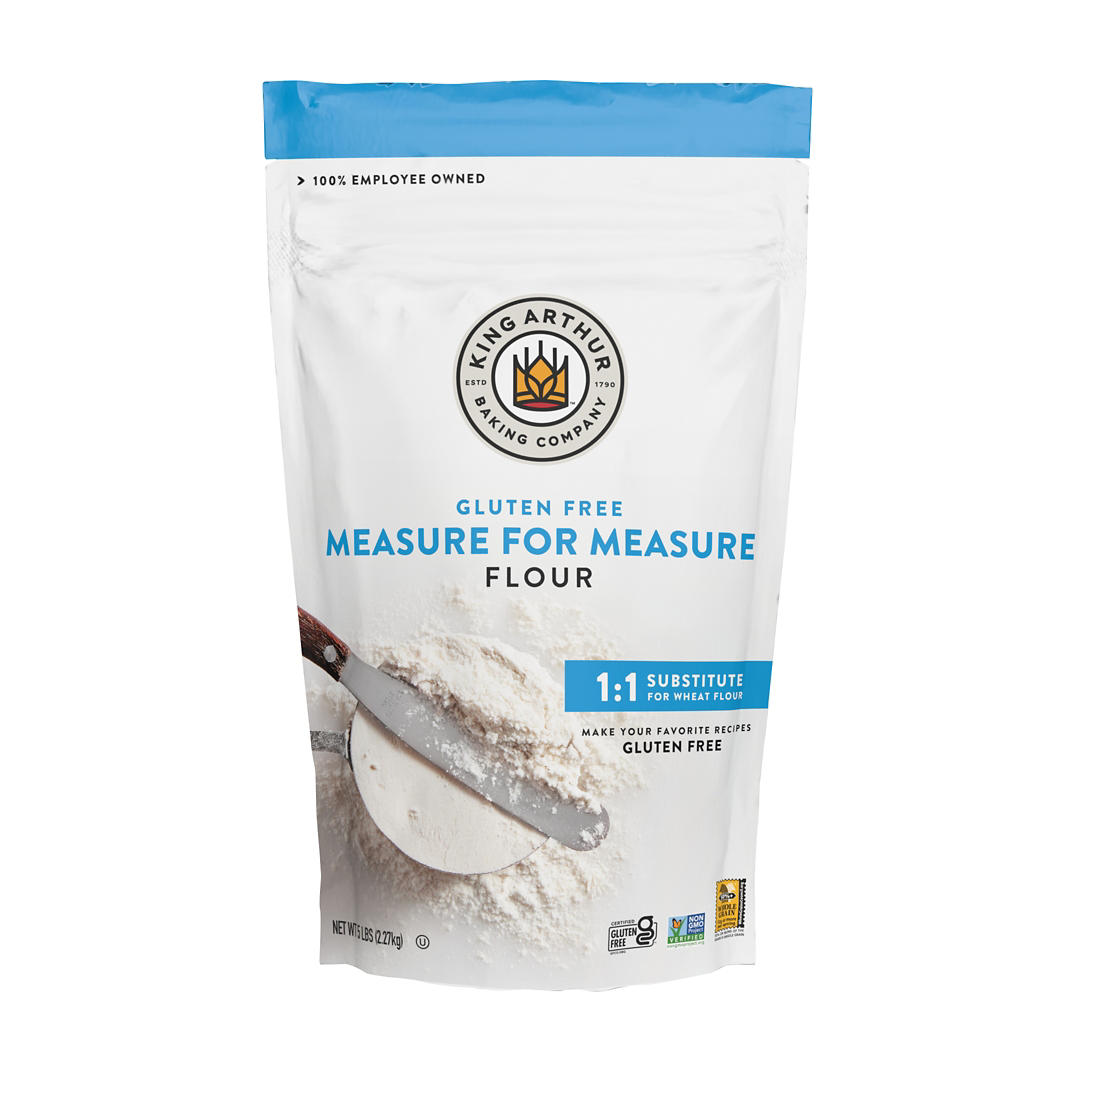 photograph about King Arthur Flour Printable Coupon called King Arthur Evaluate for Evaluate Gluten-free of charge Flour, 5 lbs ..